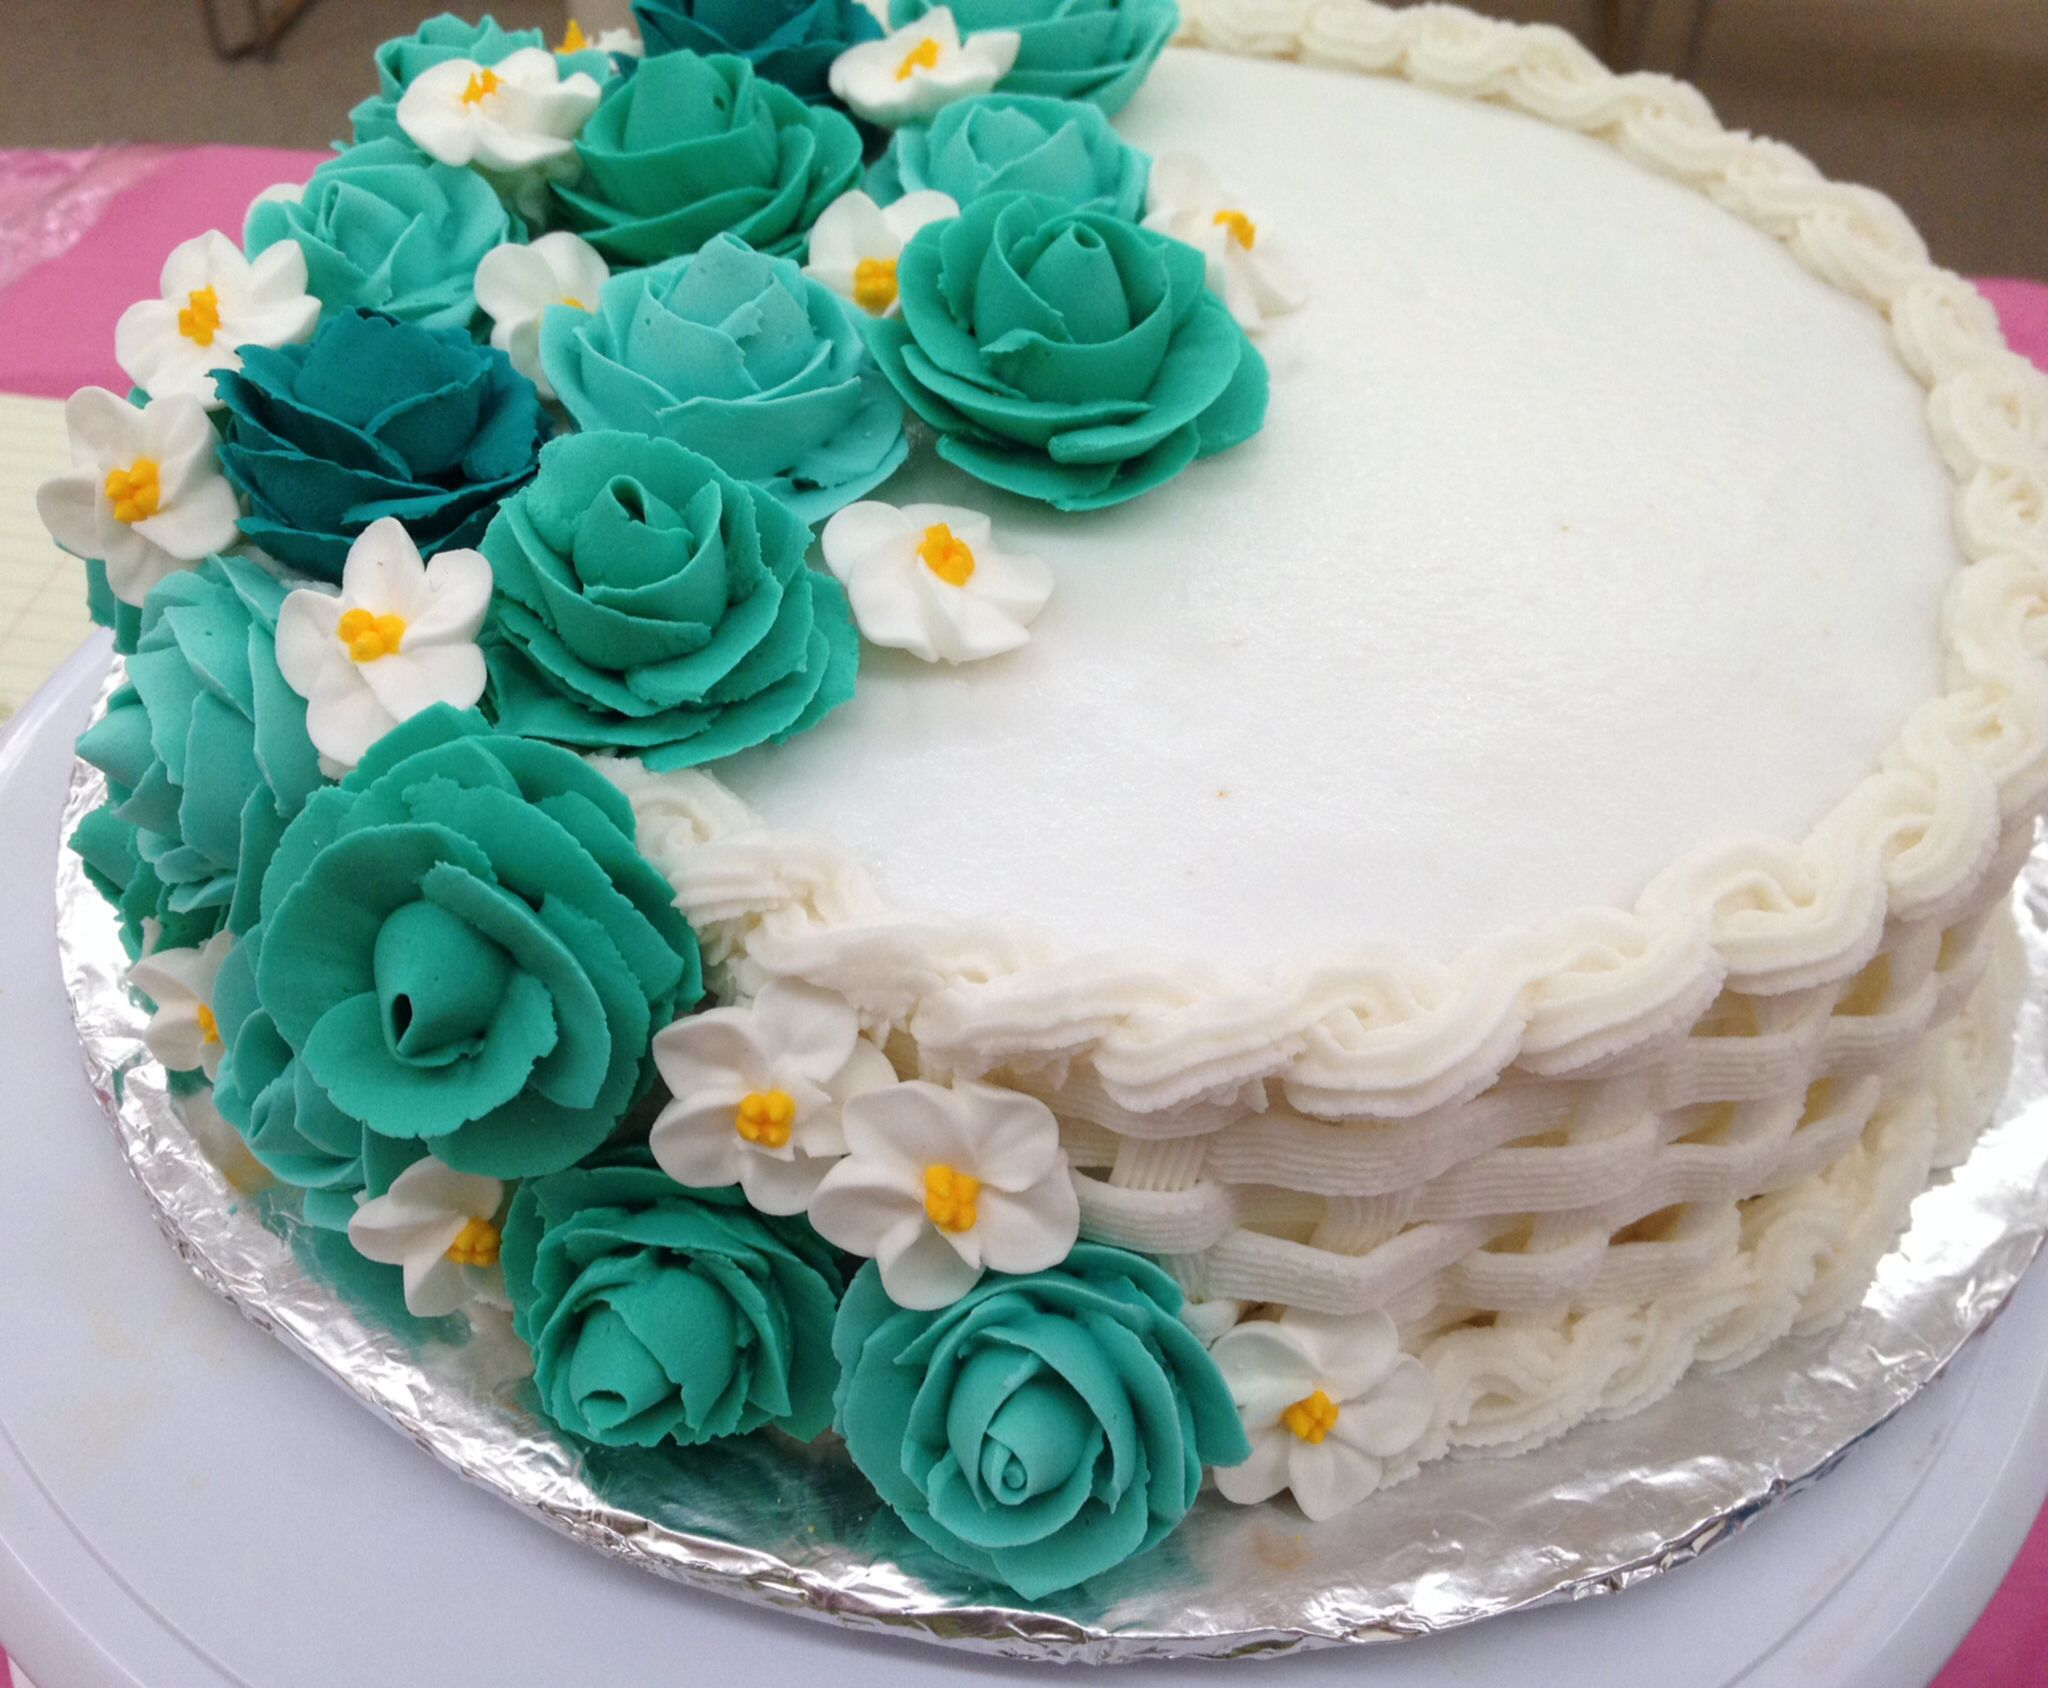 Images Of Cake With Icing : Wilton course 2 cake completed! Lemon cake with raspberry ...